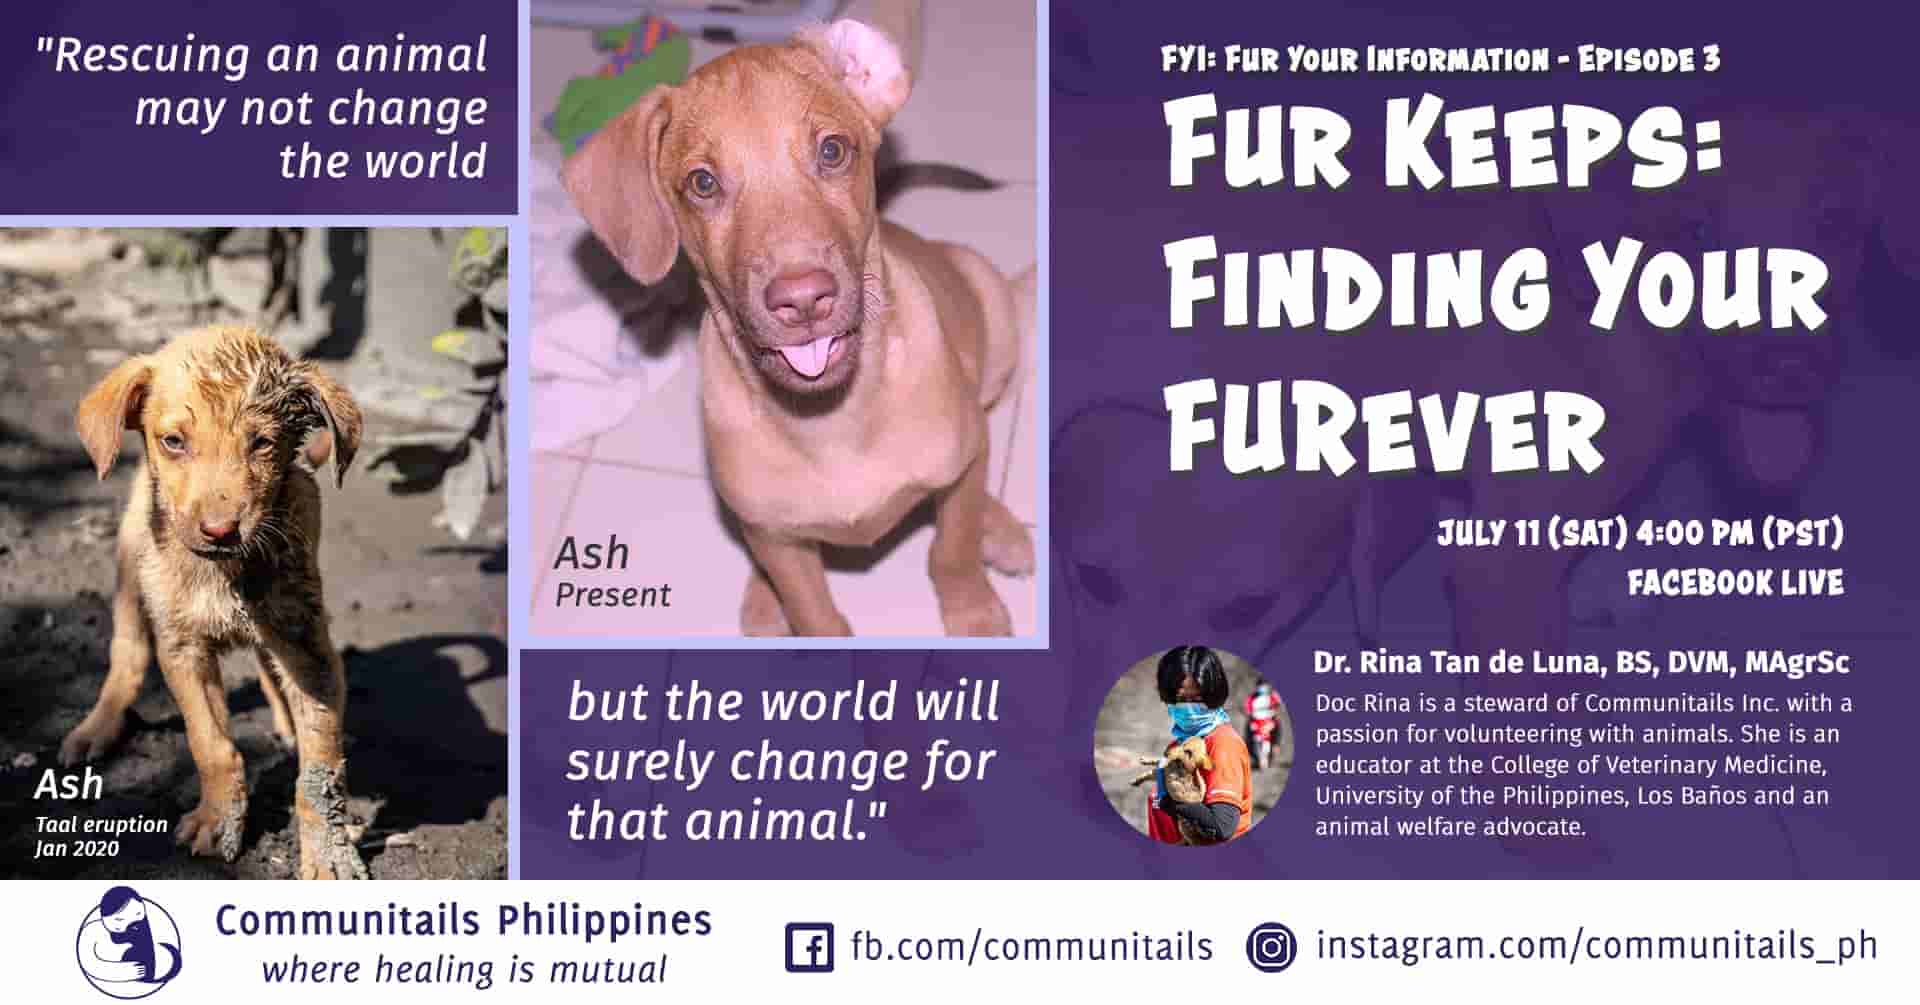 Fur Your Information (FYI) Episode 3: Finding Your FURever